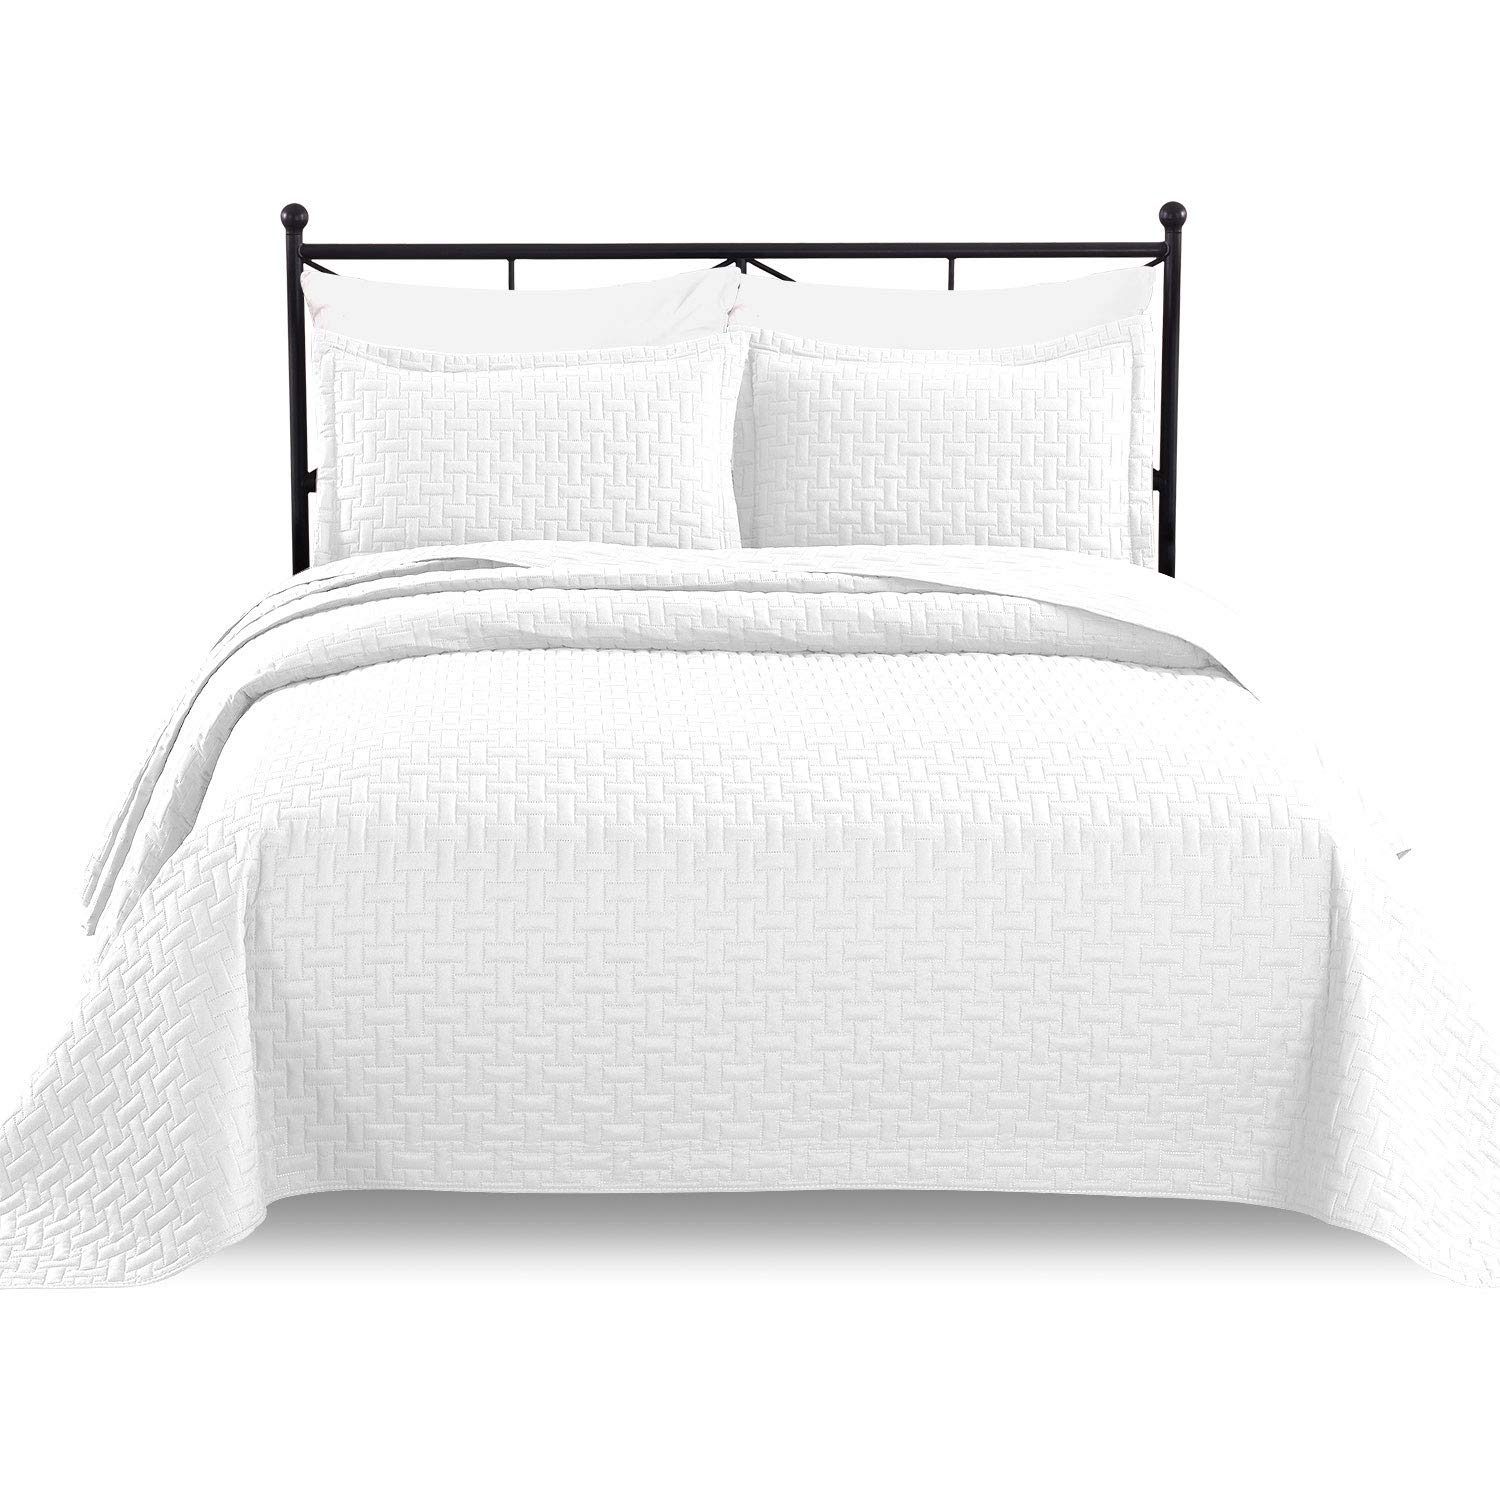 Luxe Bedding 3-piece Oversized Quilted Bedspread Coverlet Set, White, King / Cal King